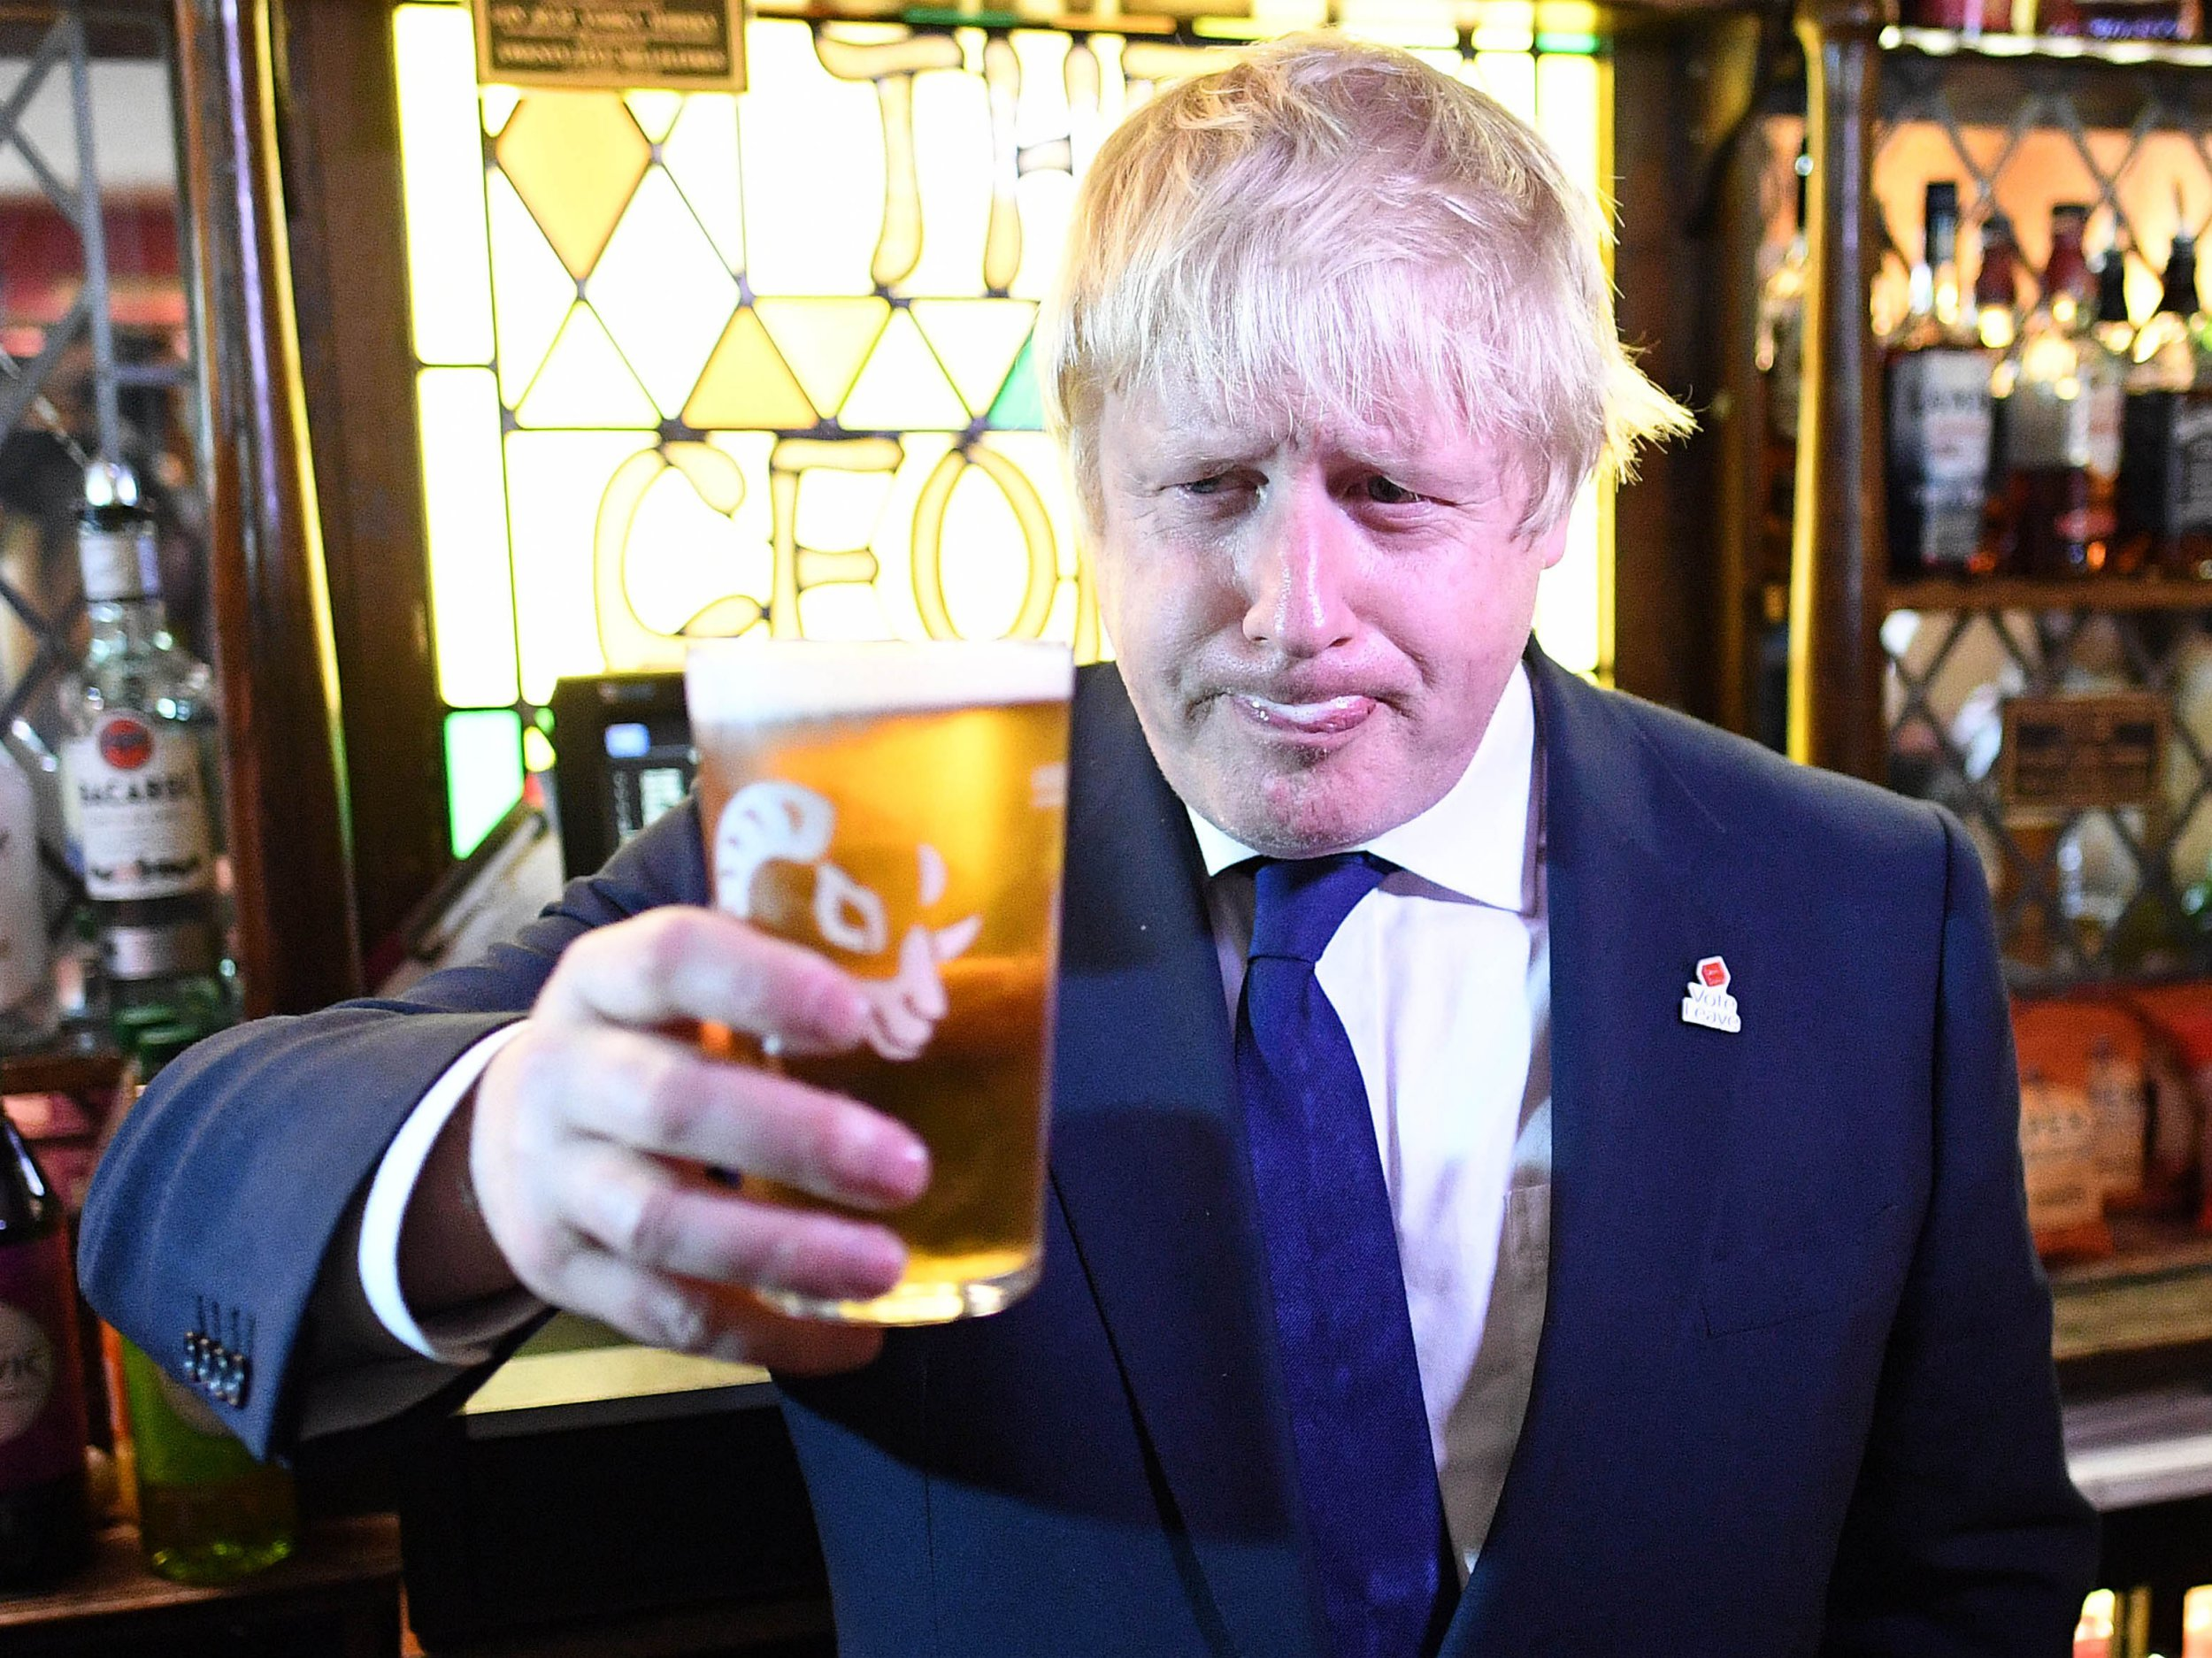 Mandatory Credit: Photo by REX/Shutterstock (5735889dq) The Former Mayor of London Boris Johnson talking to vote leave supporters at The George Pub in Darlington, as part of his 12 hour tour of the country for the Vote Leave Campaign, on the eve of the UK referendum. Boris Johnson Brexit campaigning, UK - 22 Jun 2016